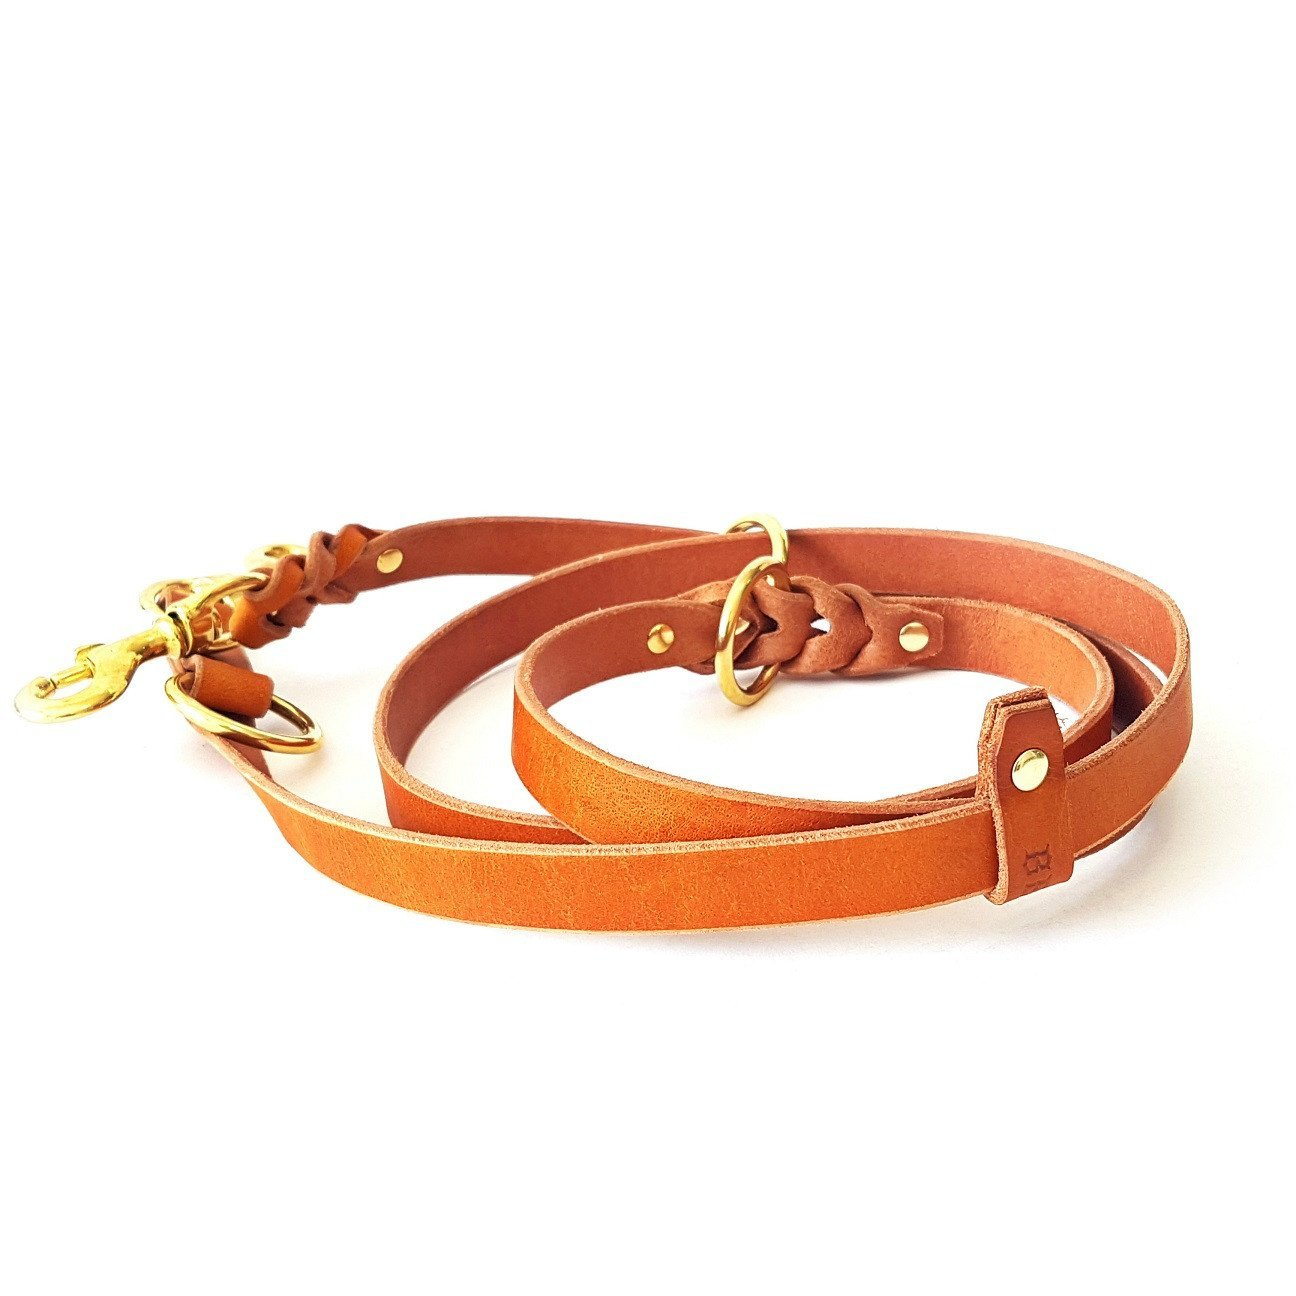 Brown Bestia 6 feet Dual snap Multi Purpose Leather Dog Leash. Heavy Duty & Ever Lasting, 10+ Different uses  Out of Thick but Soft Quality Buffalo Leather. Handmade in Europe